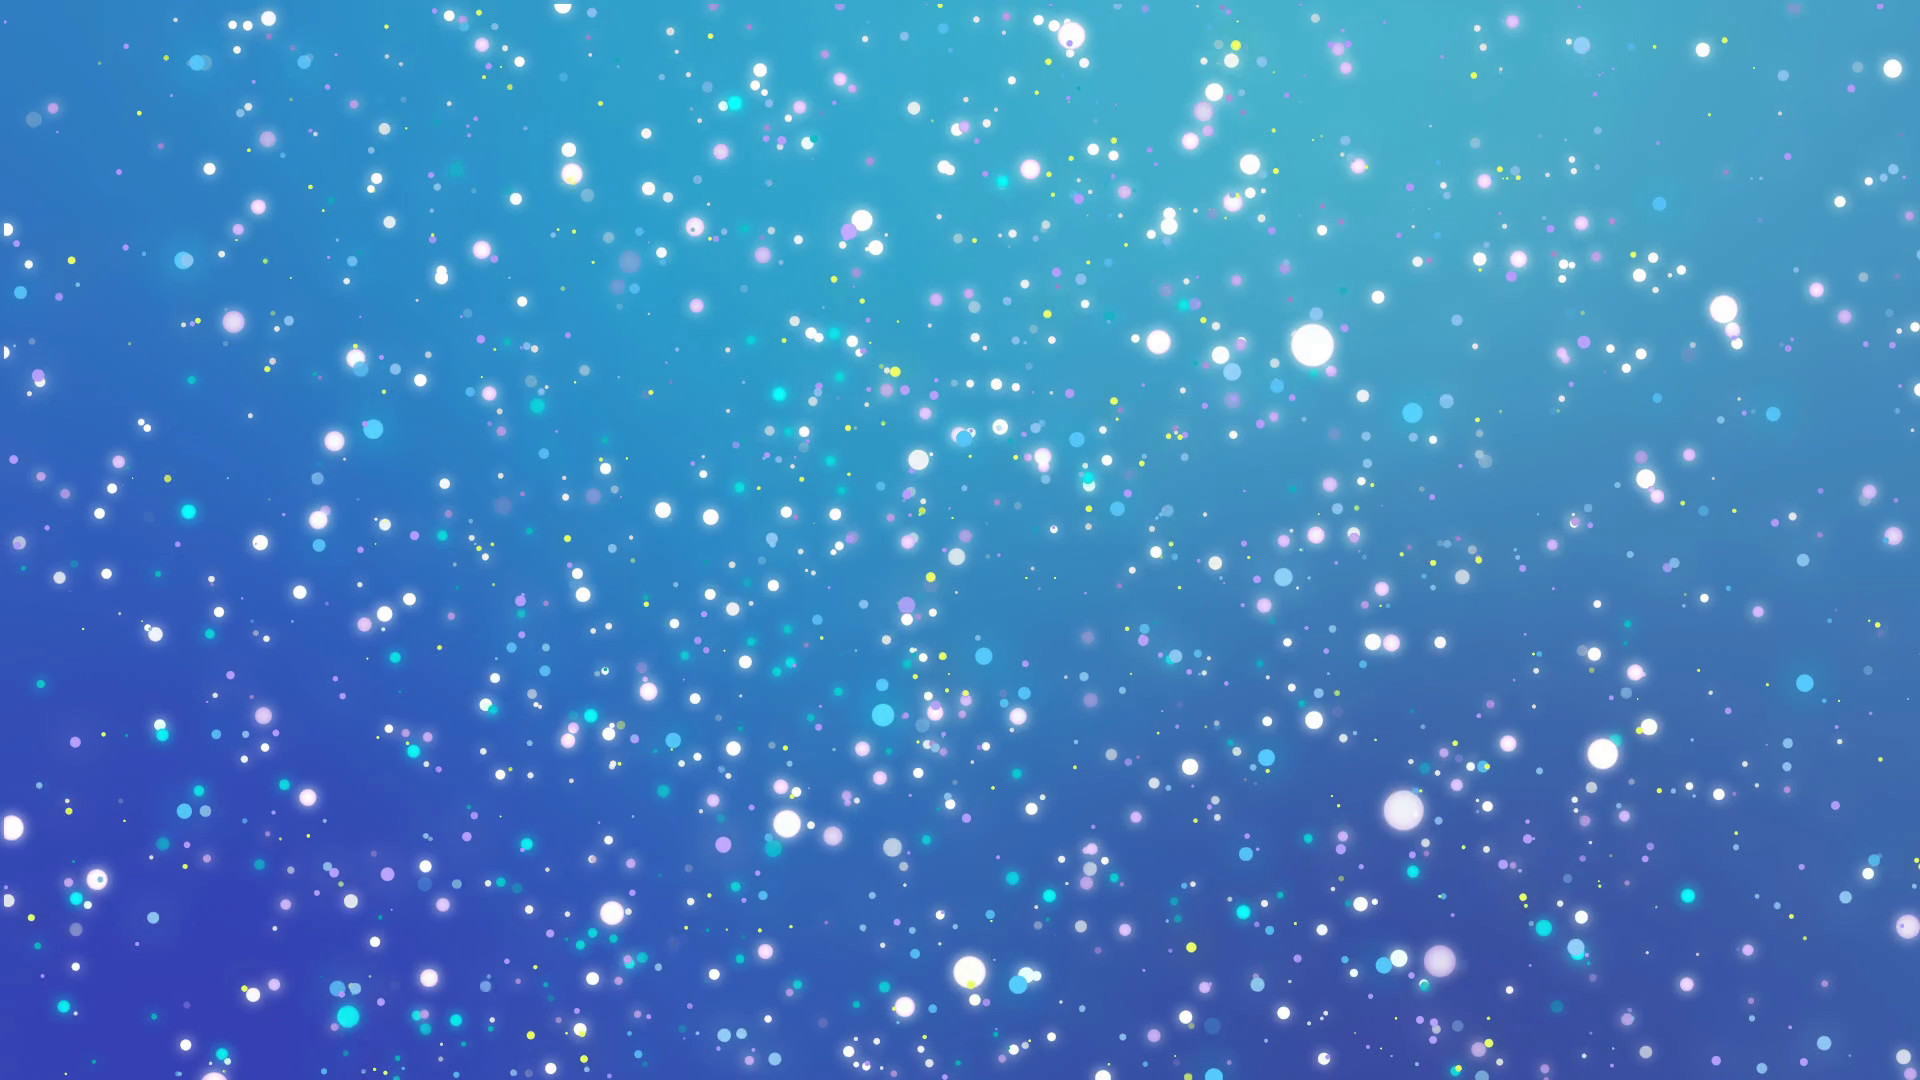 Res: 1920x1080, Glitter blue purple background with sparkling colorful light particles  Motion Background - Videoblocks